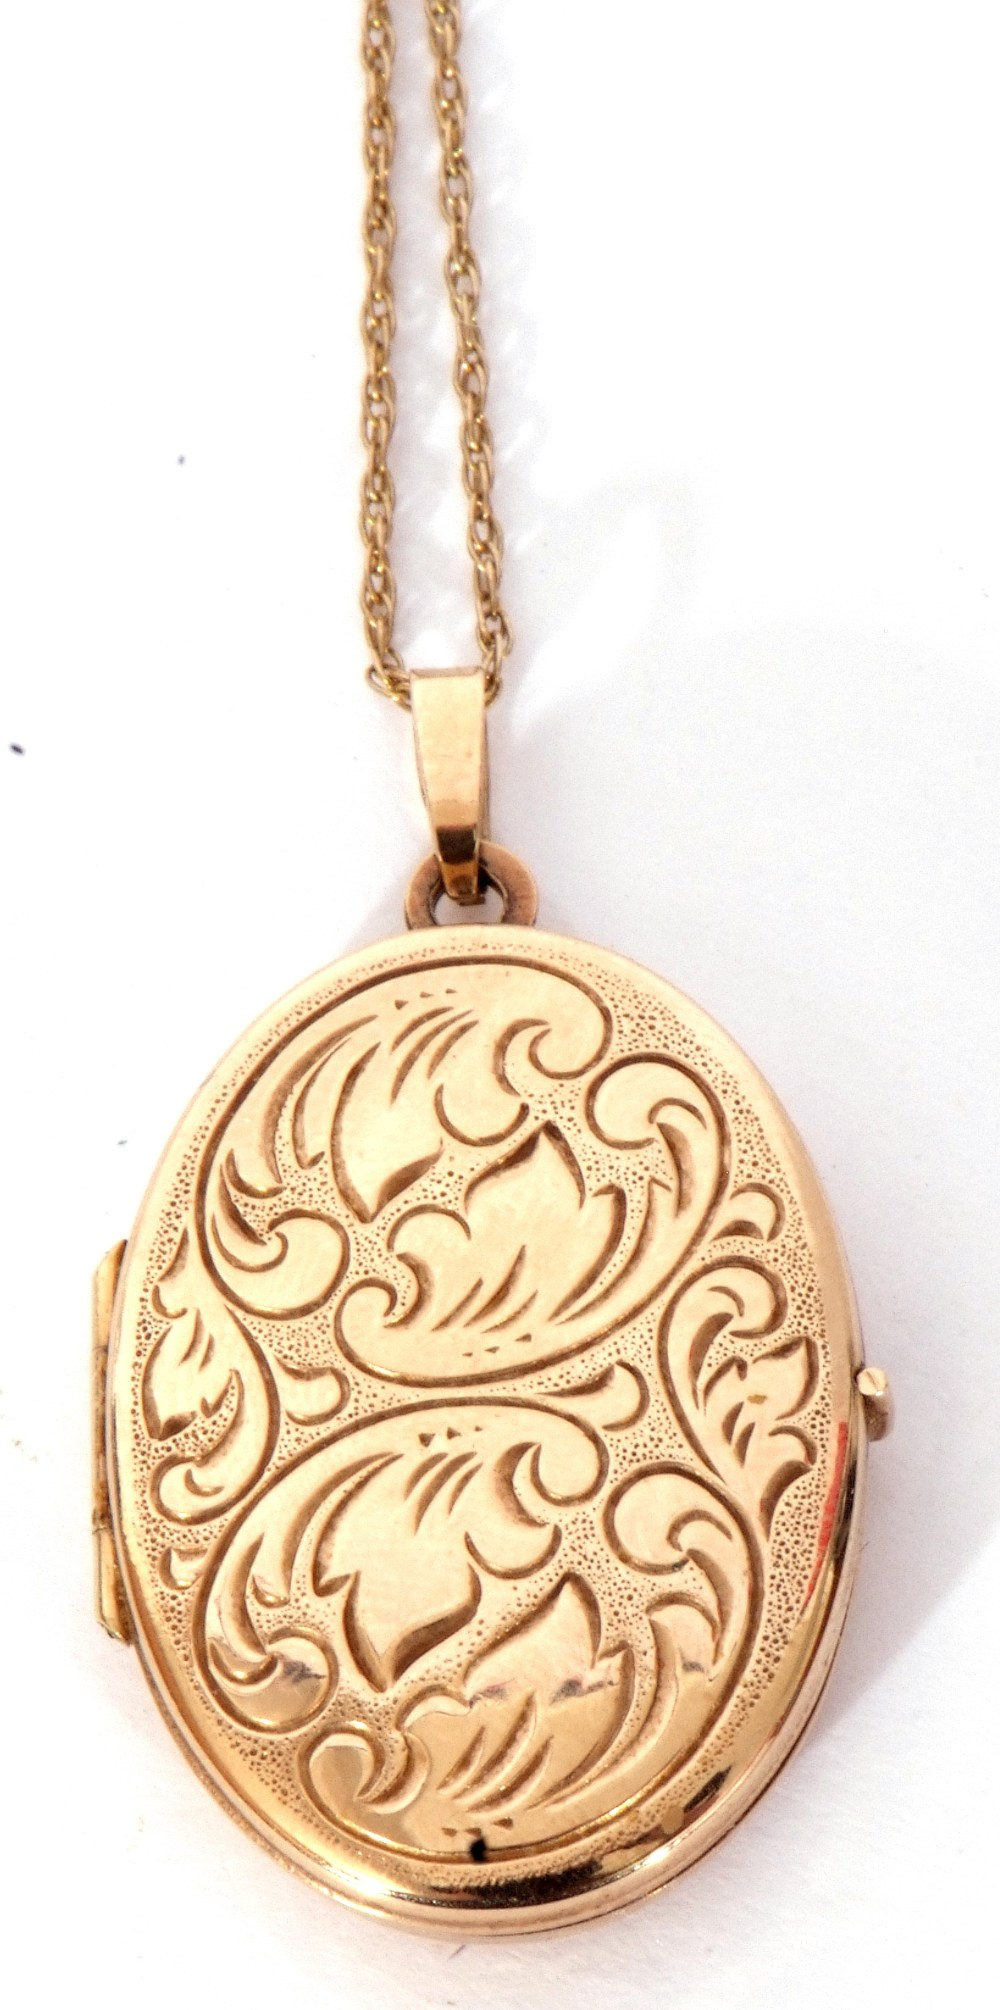 Modern oval yellow metal hinged locket, the front with engraved detail, burnished verso, suspended - Image 3 of 4